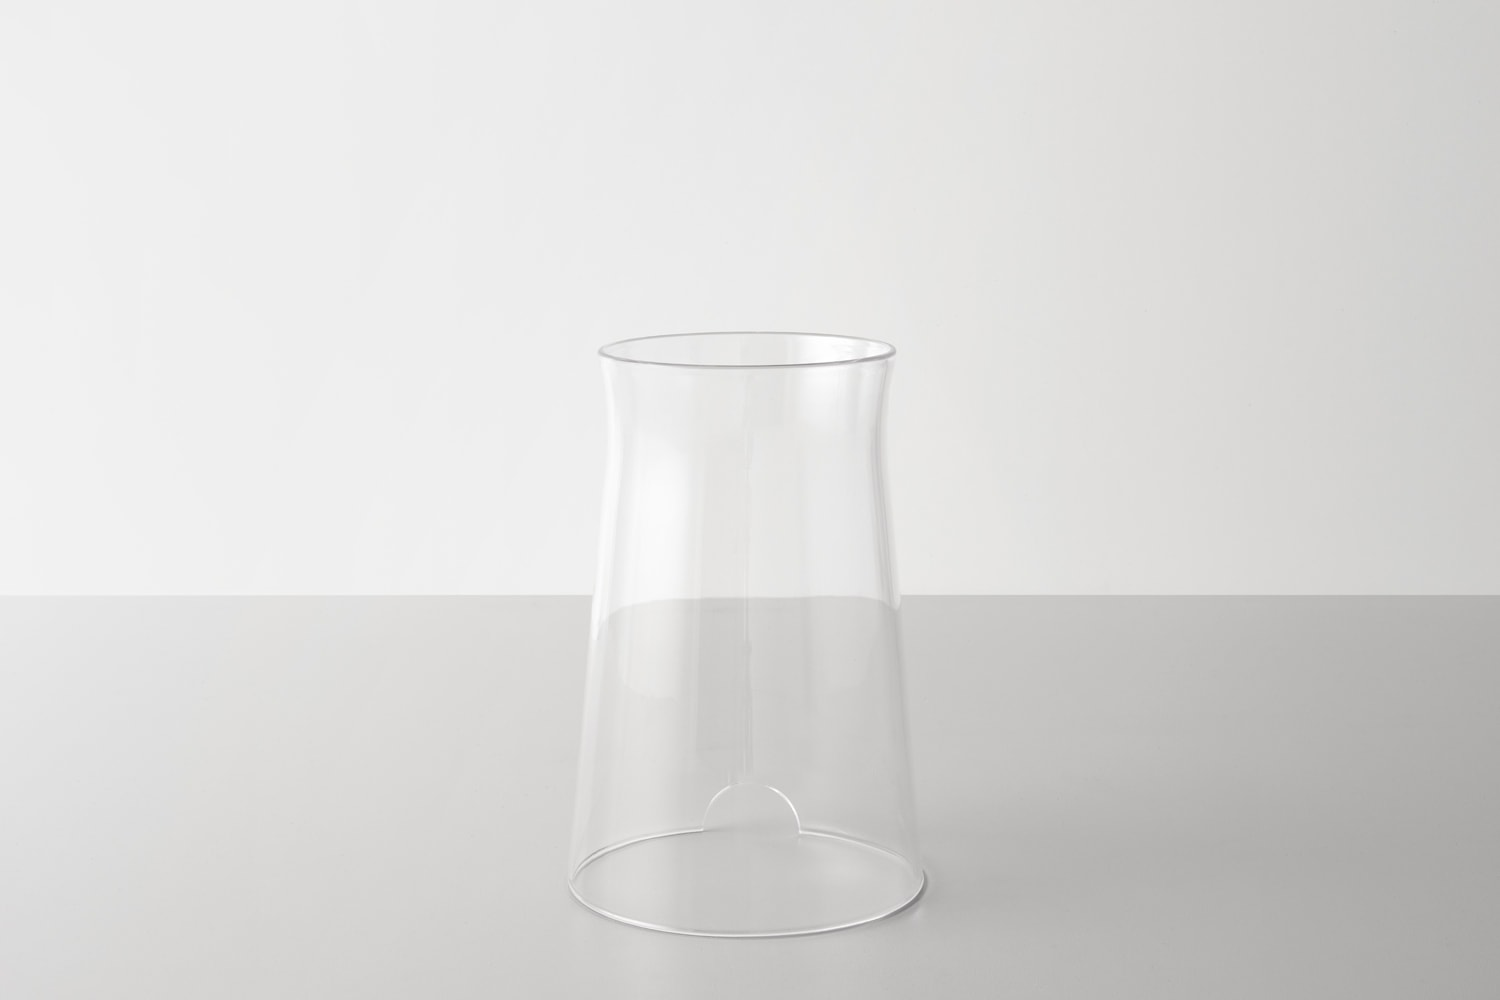 Front view of the DADI Founding Node glass casing.